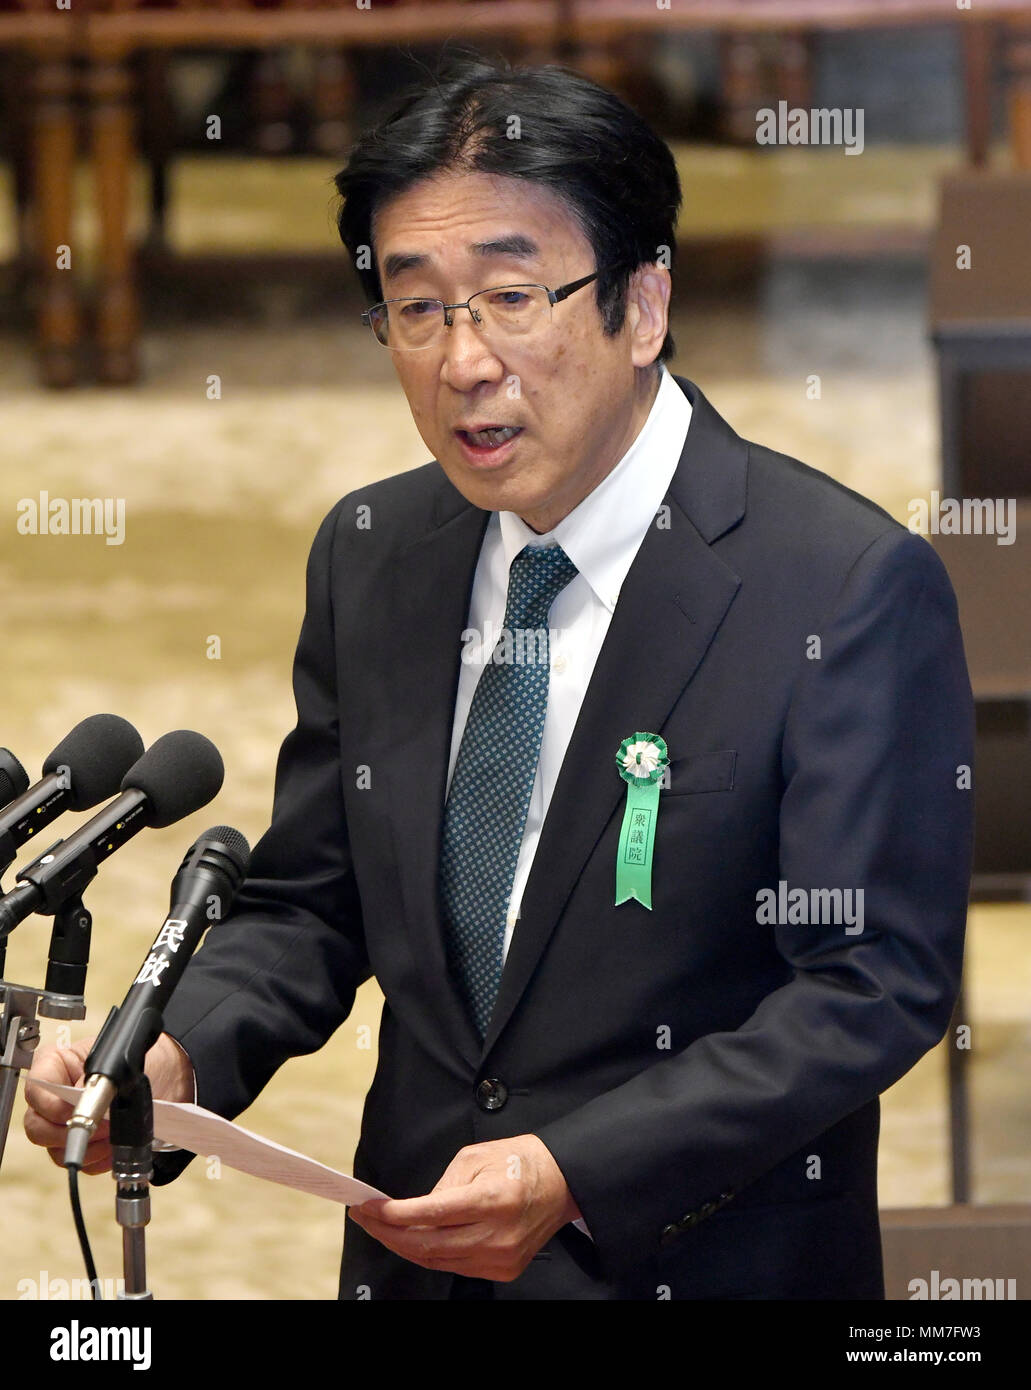 Tokyo, Japan. 10th May, 2018. Chairman Tatsuo Hatta of the Council on National Strategic Special Zones testifies as unsworn witness before the Diet session in Tokyo on Thursday, May 10, 2018, on the issues of Kake-Gakuen, a veterinary school operated by a close friend of Prime Minister Shinzo Abe, and Motiromo-Gakuen, a dubious school operator with whom Abes wife Akie was allegedly involved. Credit: Natsuki Sakai/AFLO/Alamy Live News - Stock Image